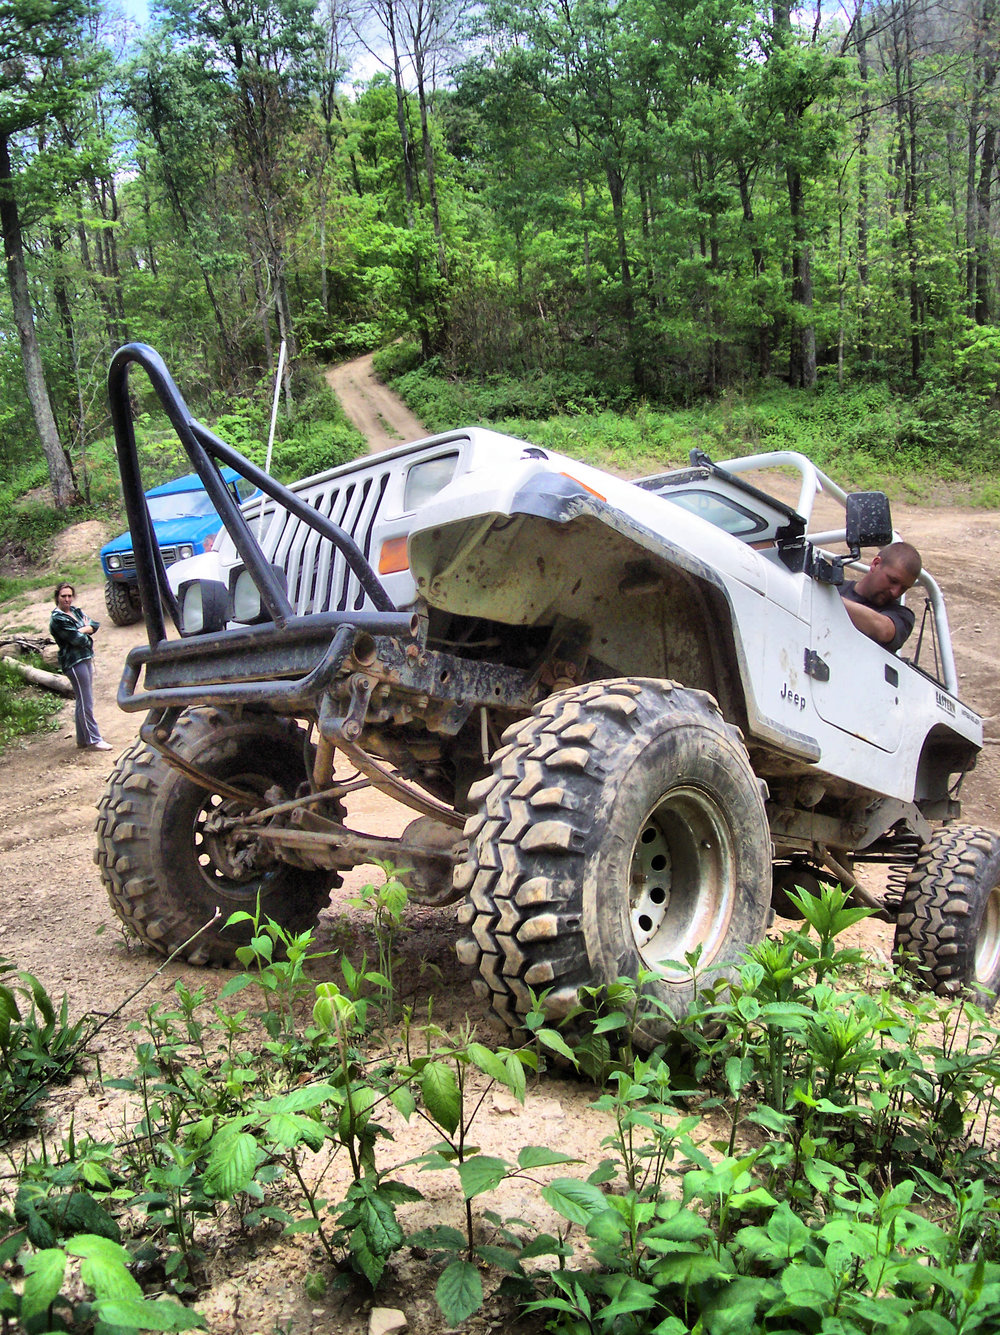 Black Mountain Off-Road Adventure Area - This 7,000 acre Black Mountain Offroad Adventure area is every outdoor enthusiasts dream. Stay on the ground and ride your offroad vehicles on over 150 miles of easy, moderate and extreme trails or fly above the treetops on our 11 line zipline canopy tour. Whichever adventure you seek, we are sure to show you a good time!